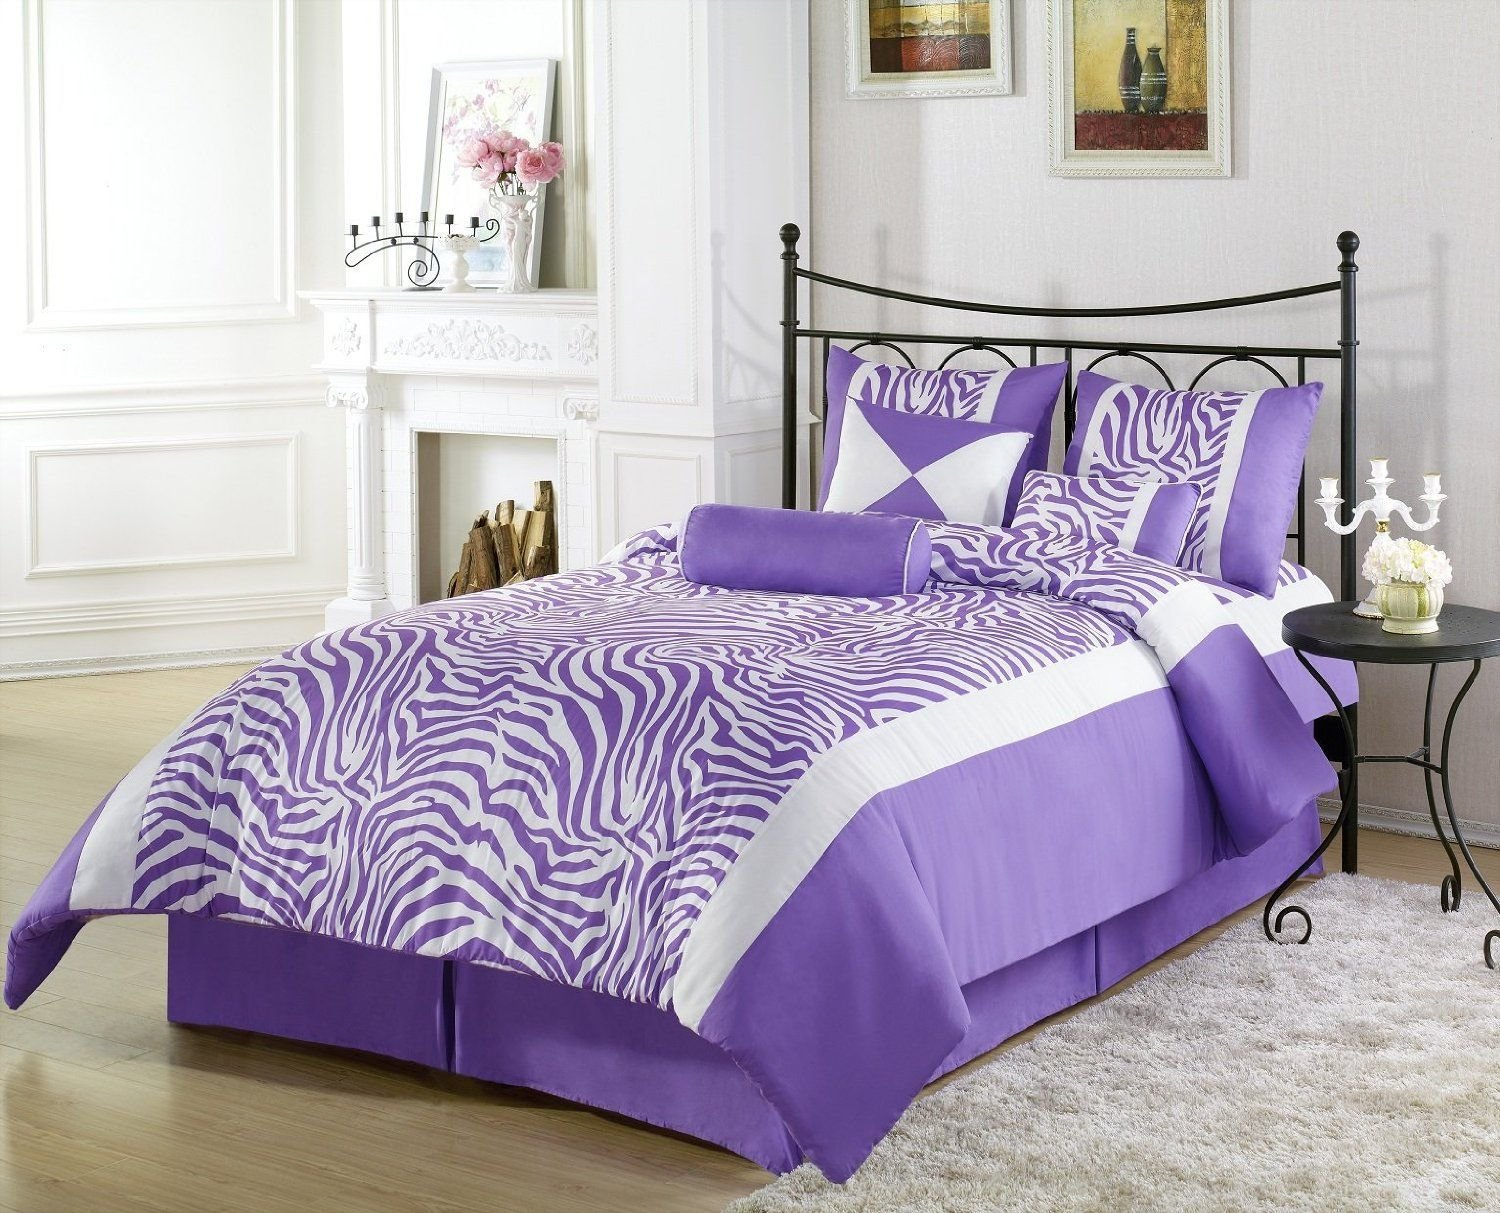 Best How To Incorporate Zebra Print Into Your Bedroom S Décor With Pictures